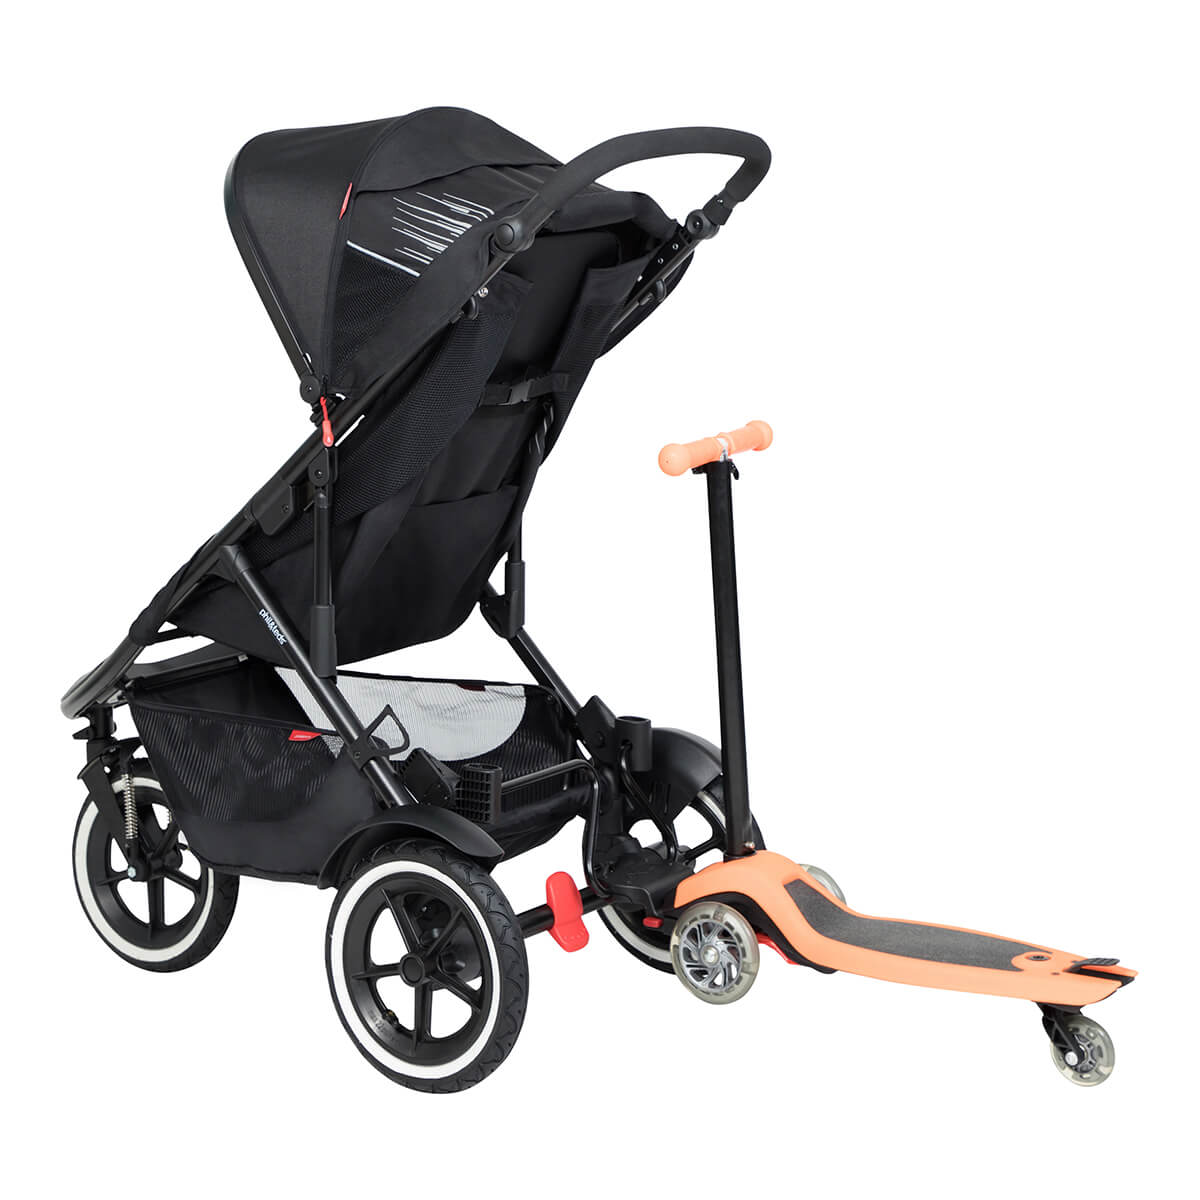 https://cdn.accentuate.io/4381202088013/19466204315842/philteds-sport-buggy-with-freerider-stroller-board-in-rear-v1626485342210.jpg?1200x1200